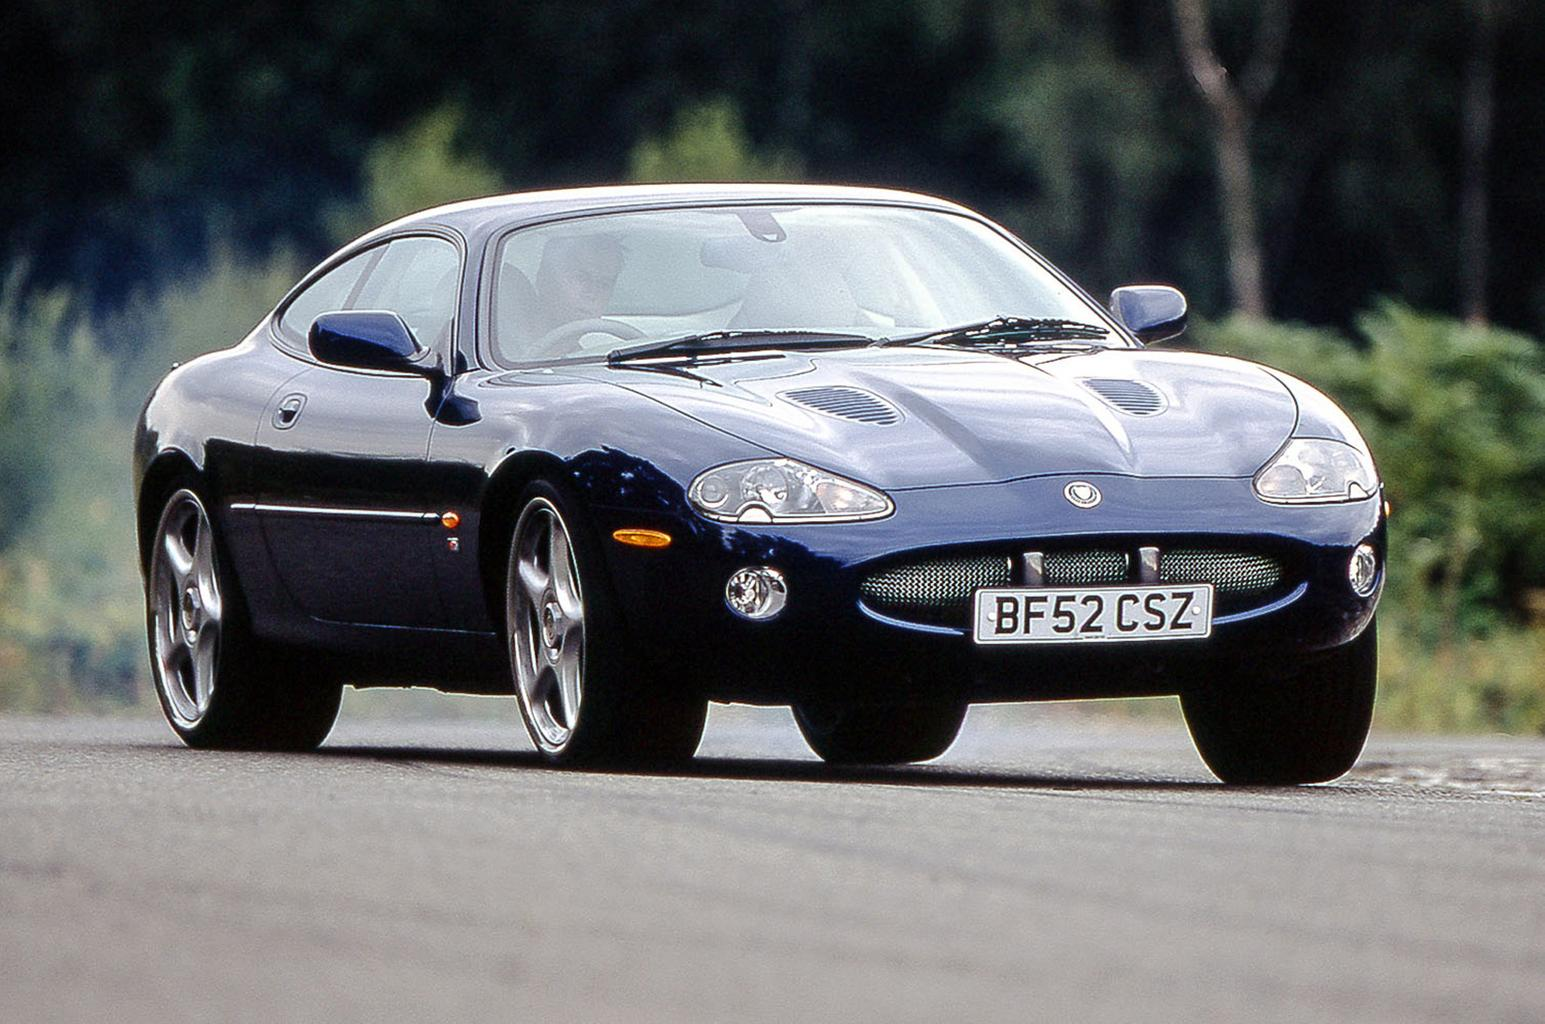 Best used coupes for less than £10,000 (and the ones to avoid)